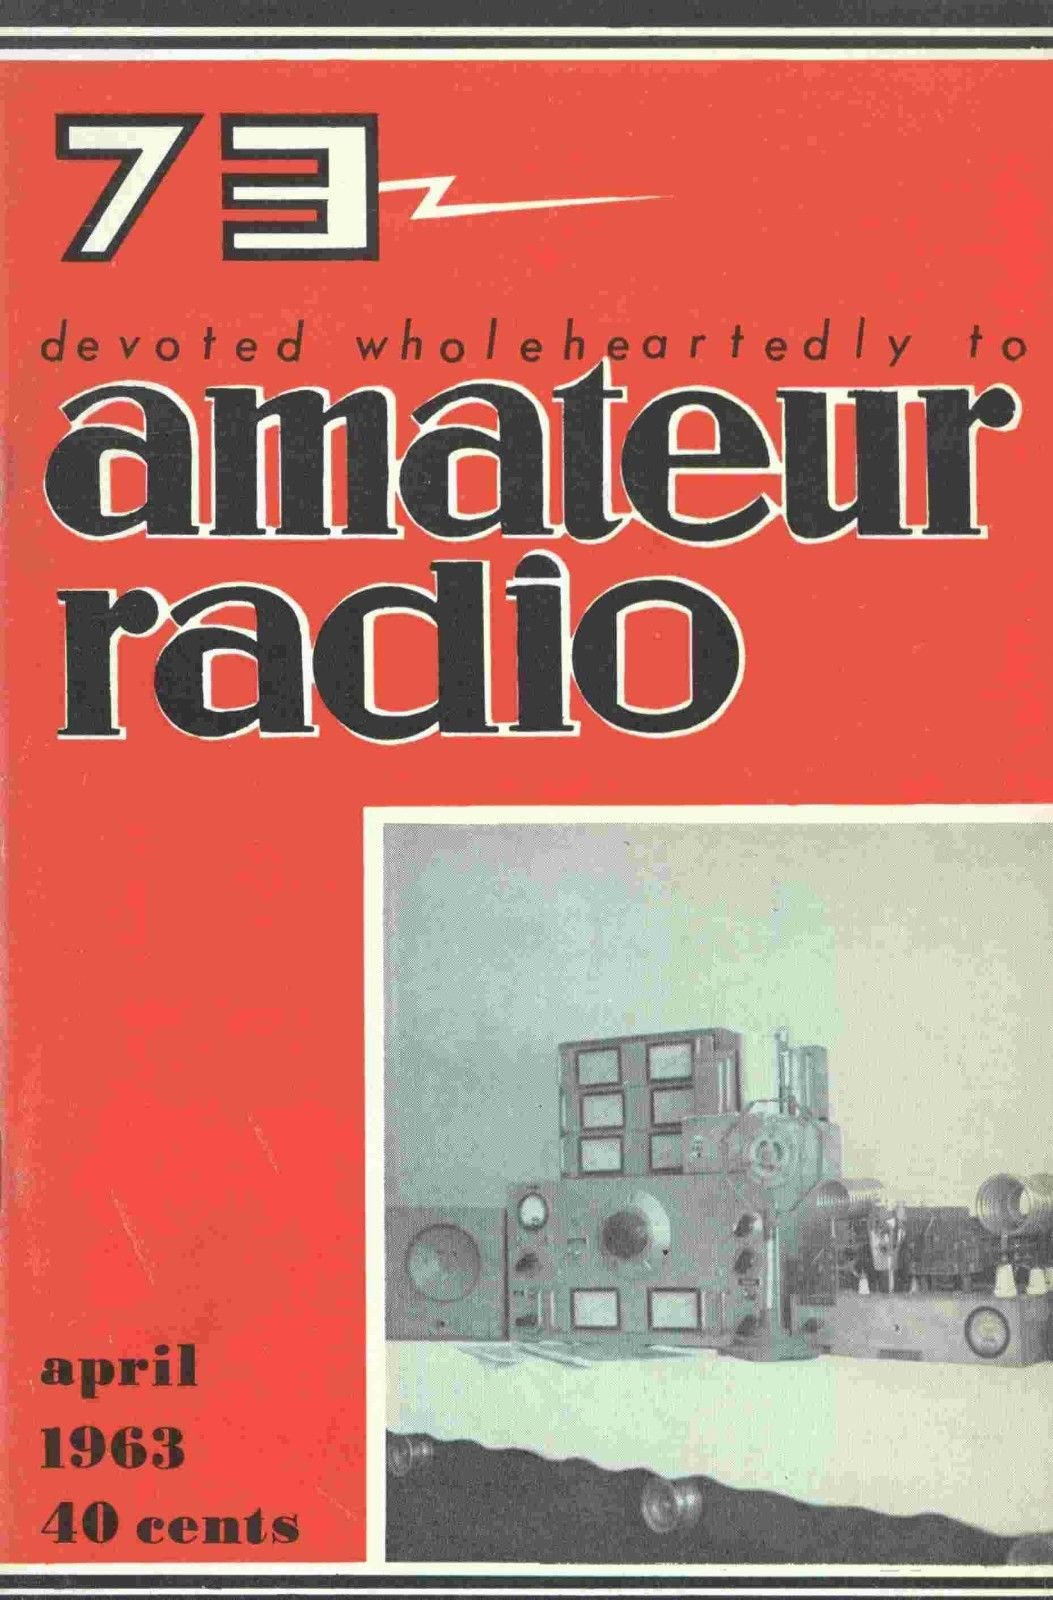 73 Magazine Amateur Radio Today All 519 Issues M127: GeekaMedia